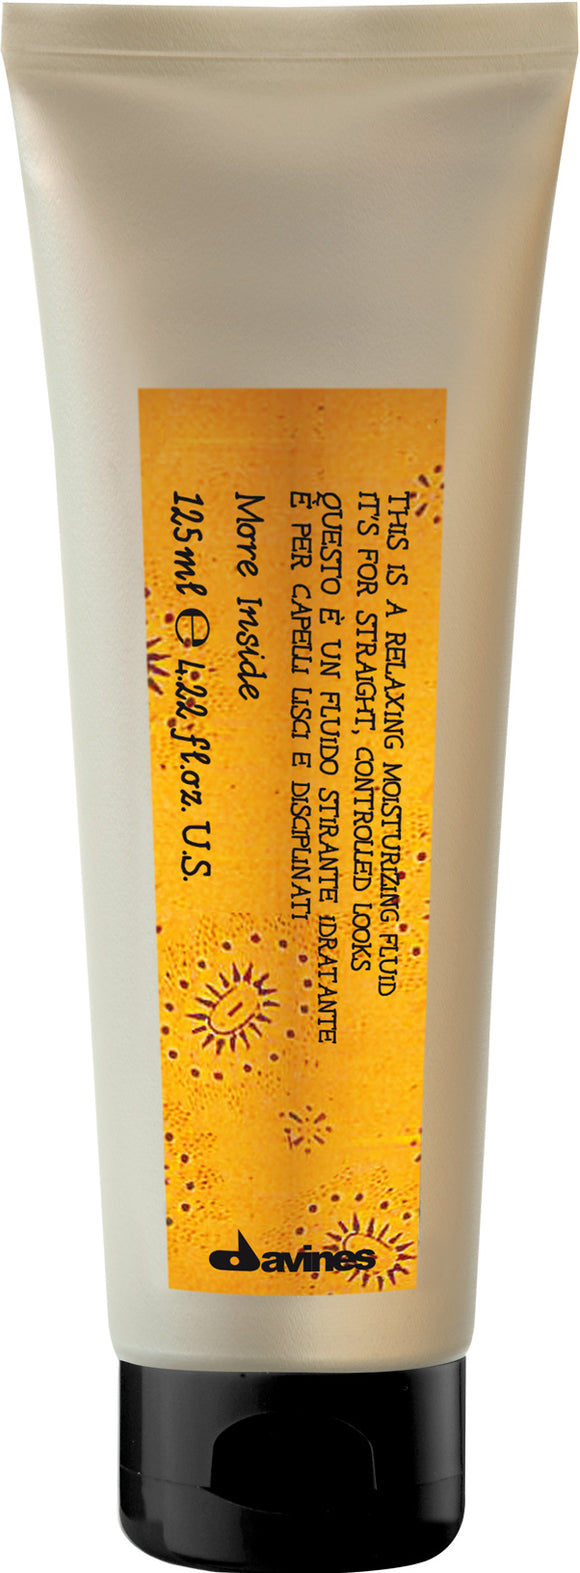 Davines more inside Relaxing Moisturizing Fluid 150ml